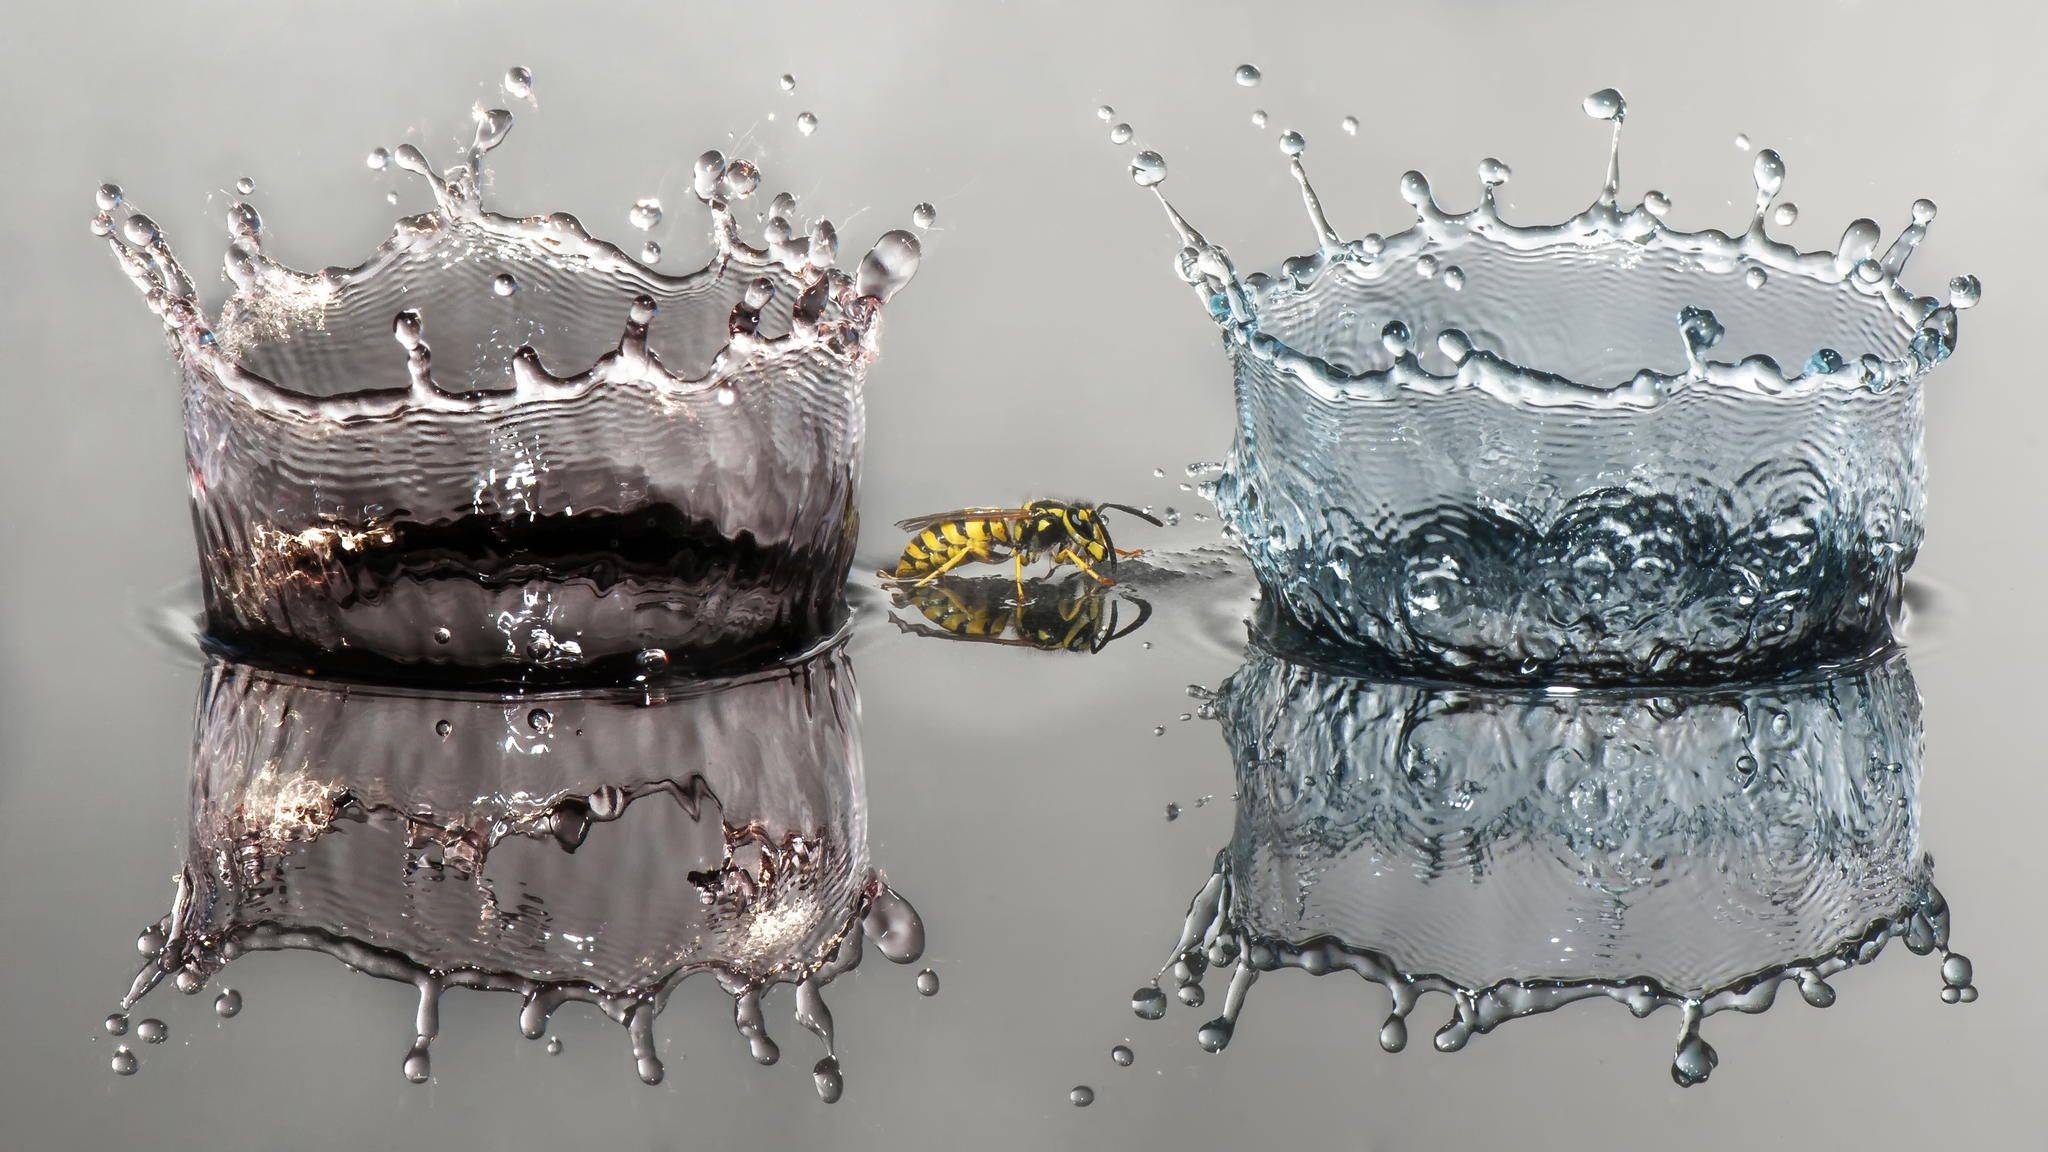 2 Water crowns and wasp - null